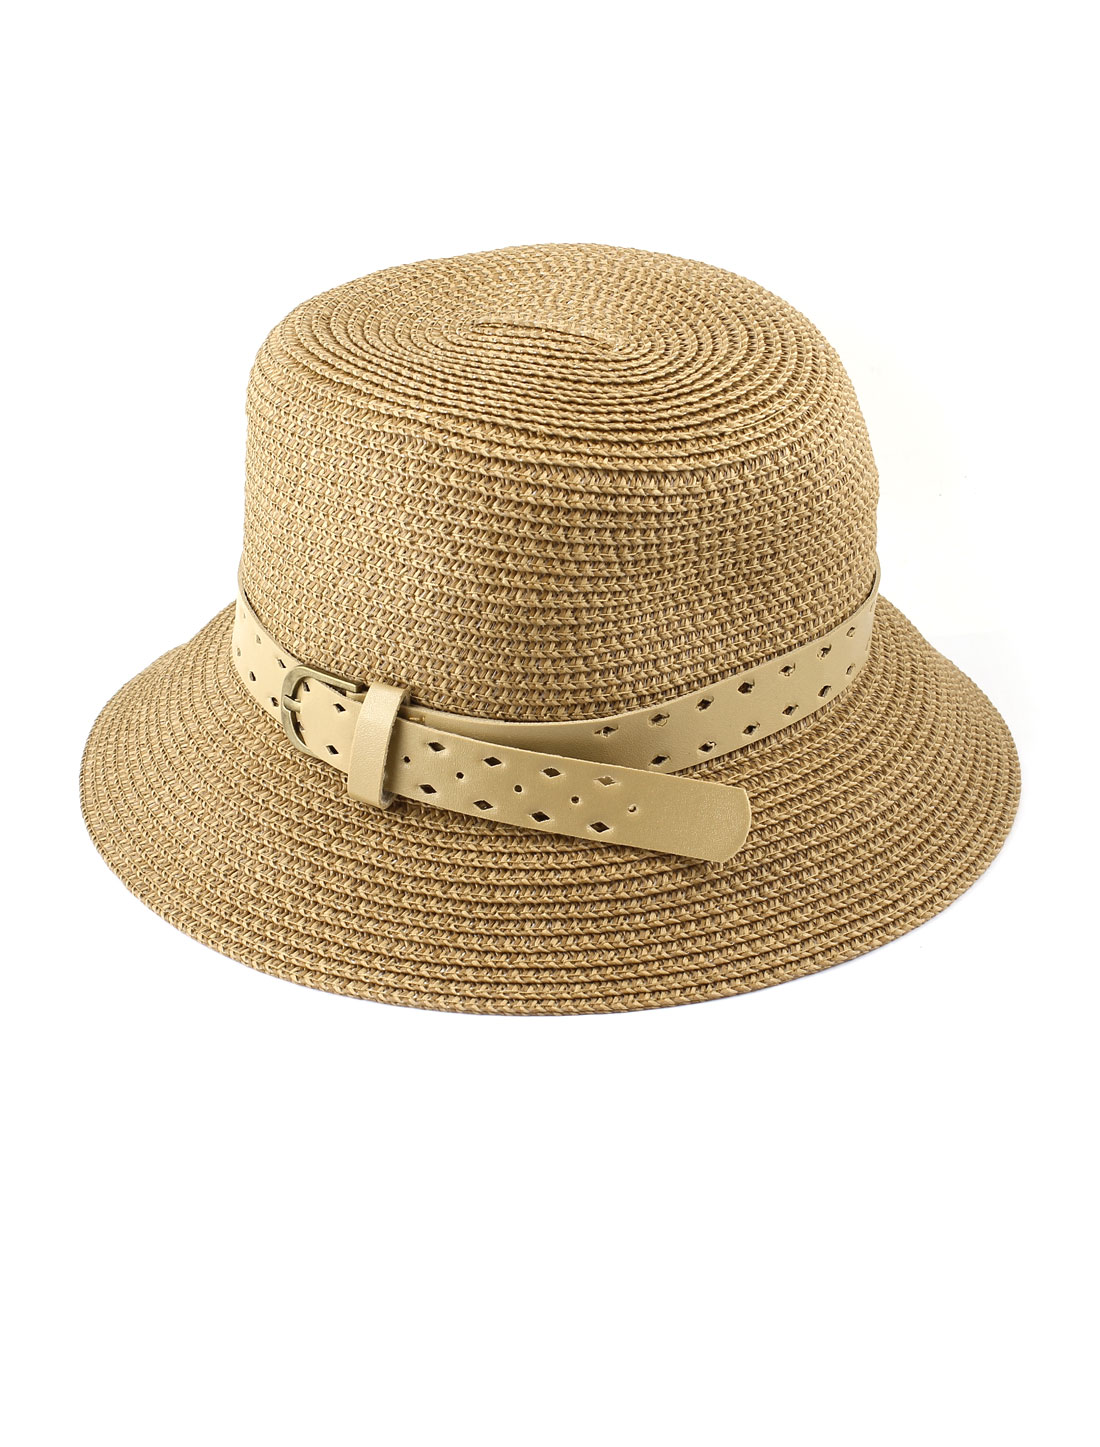 Lady Single Prong Buckle Adjustable Perforated Faux Feather Band Decor 10cm Depth Sun Visor Chapeau Cloche Bowler Hat Cap Khaki